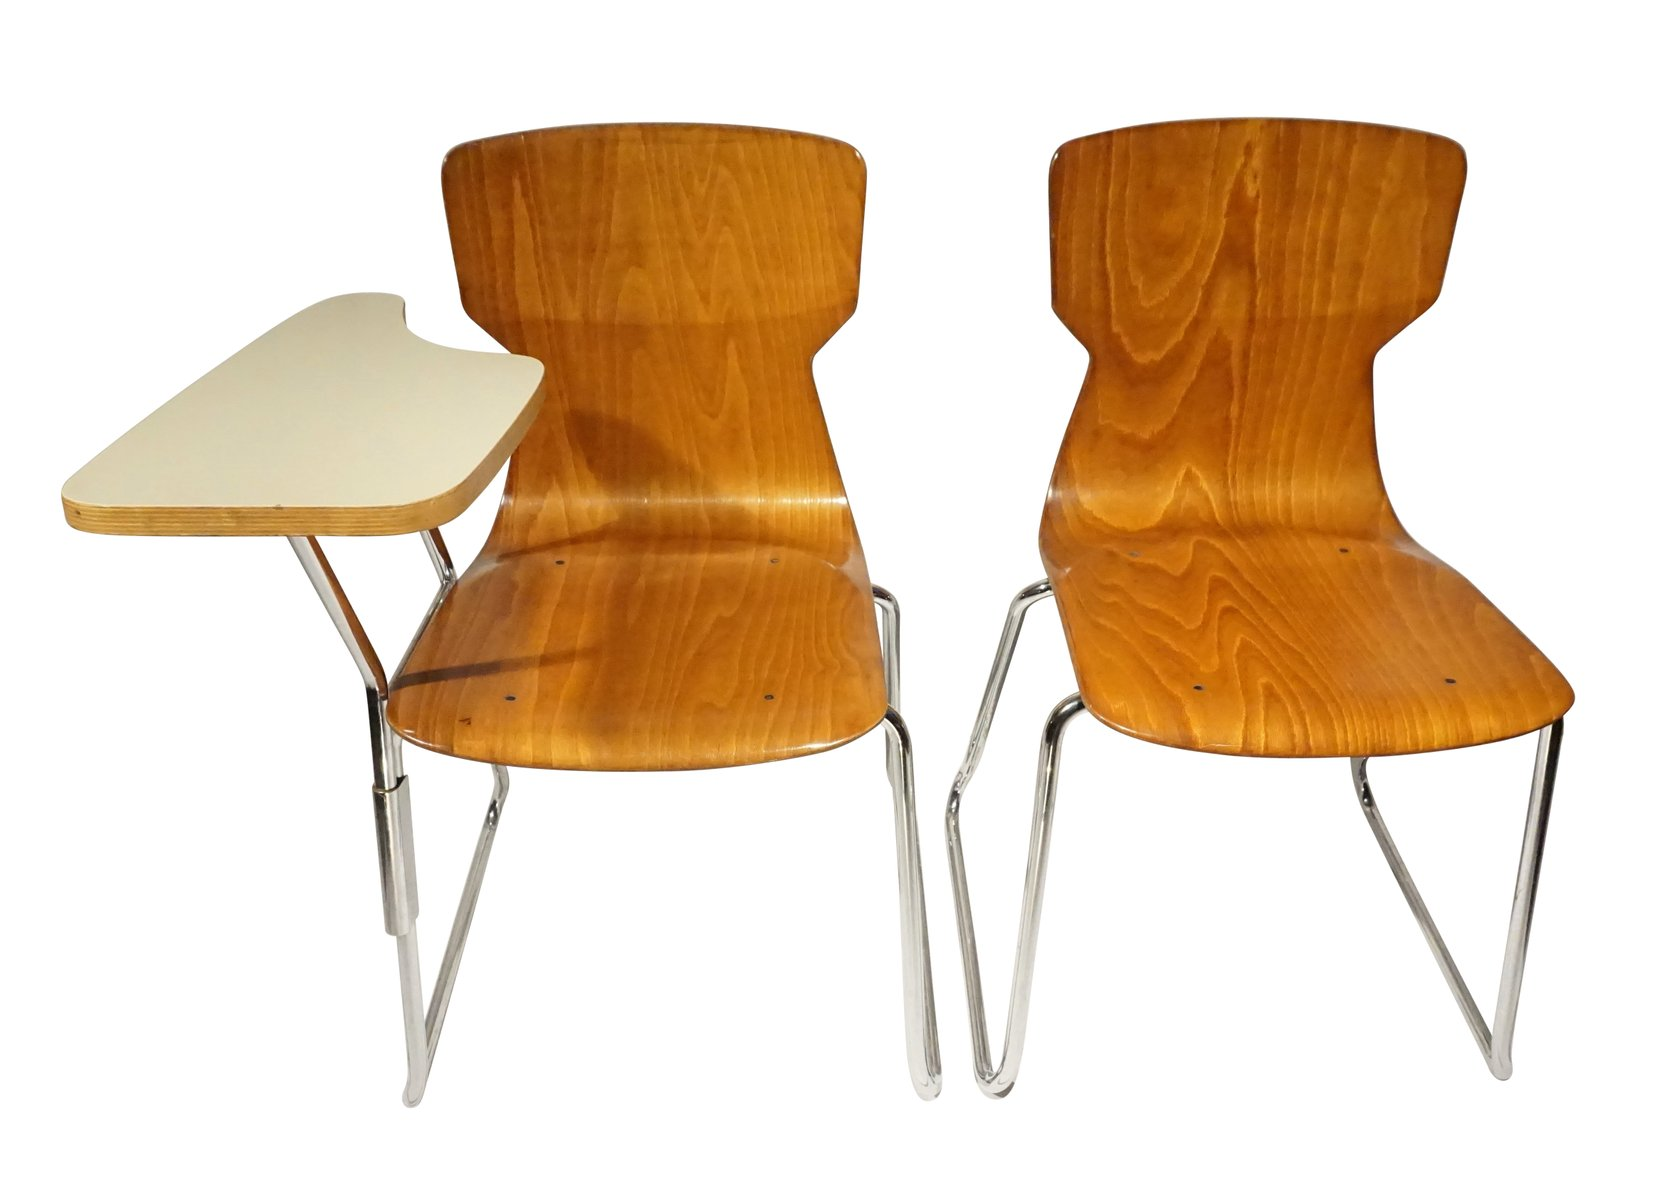 Danish School Chairs Set of 2 for sale at Pamono